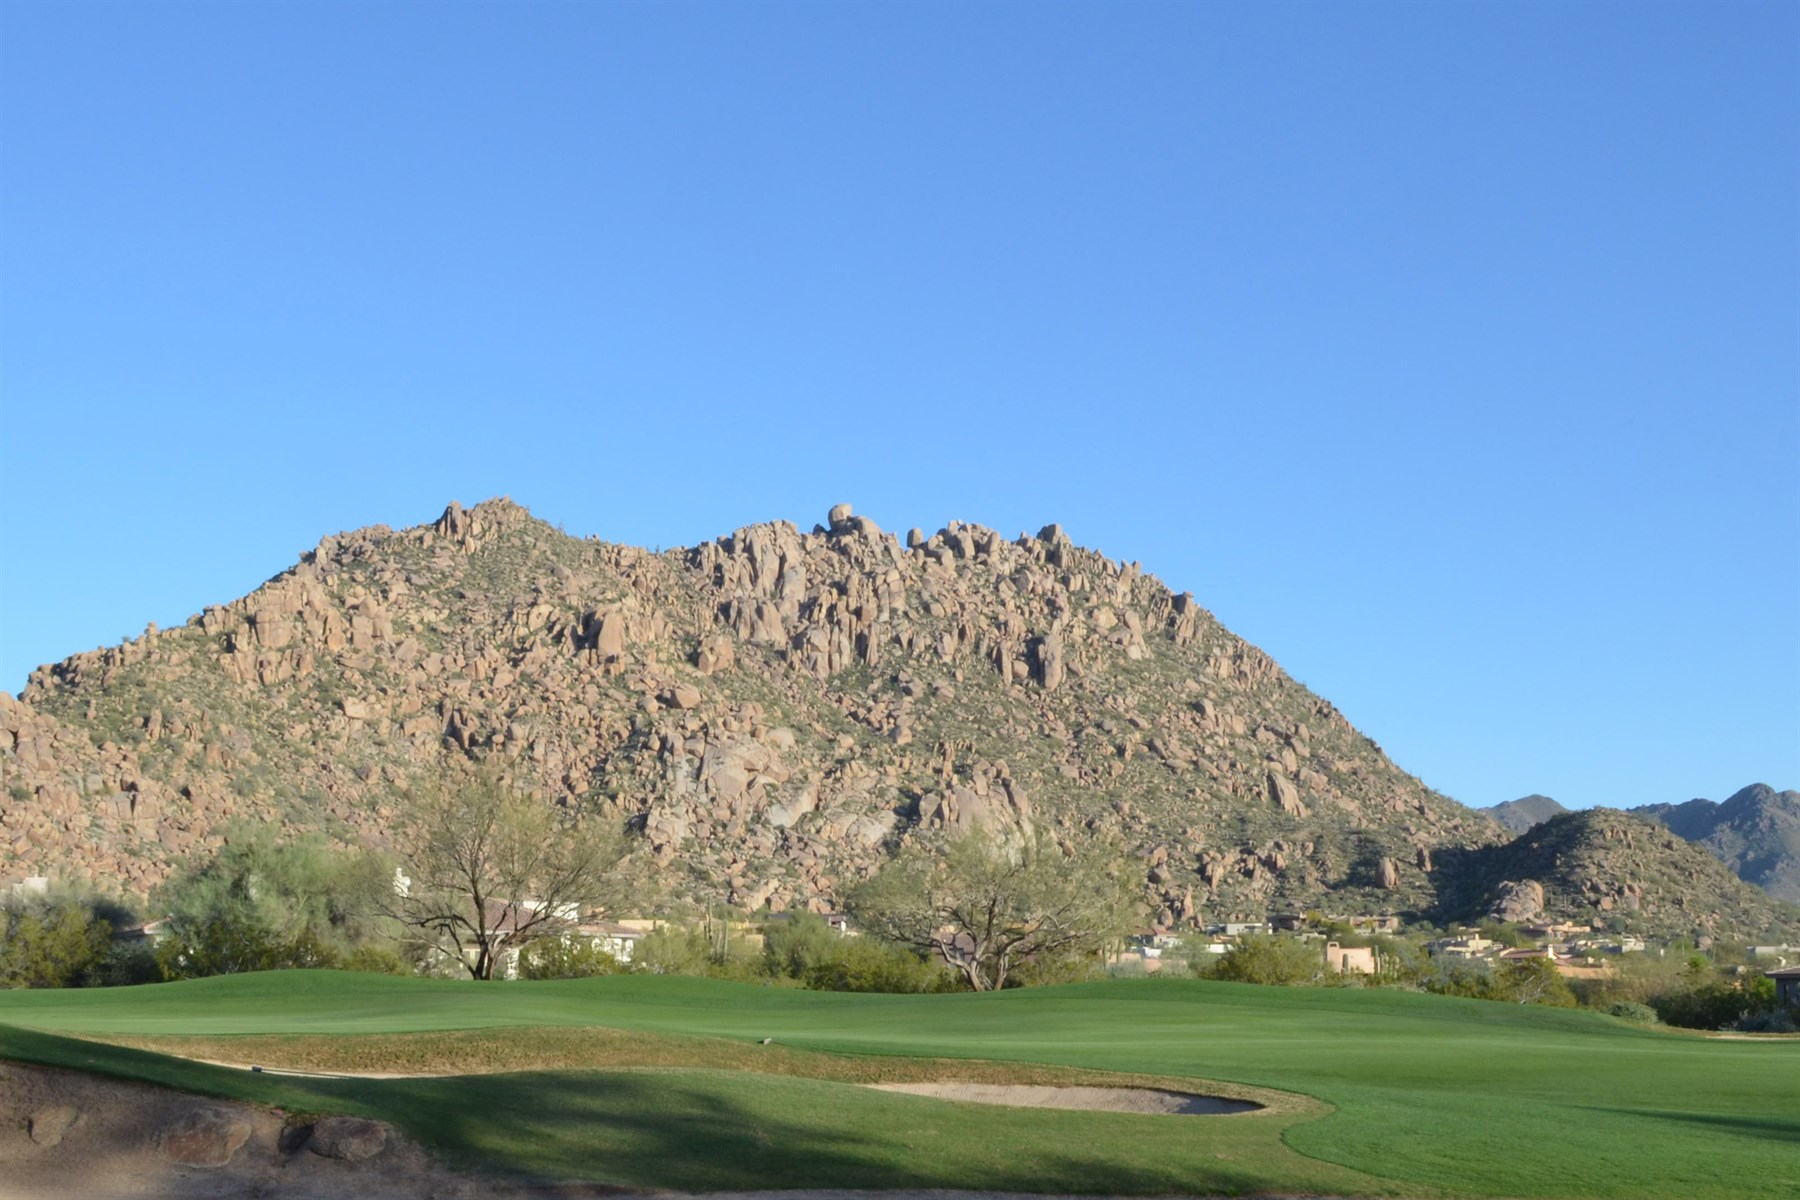 Land for Sale at Last premium golf course lot in guard gated Windy Walk Estates 10650 E Quartz Rock Rd #30 Scottsdale, Arizona, 85255 United States